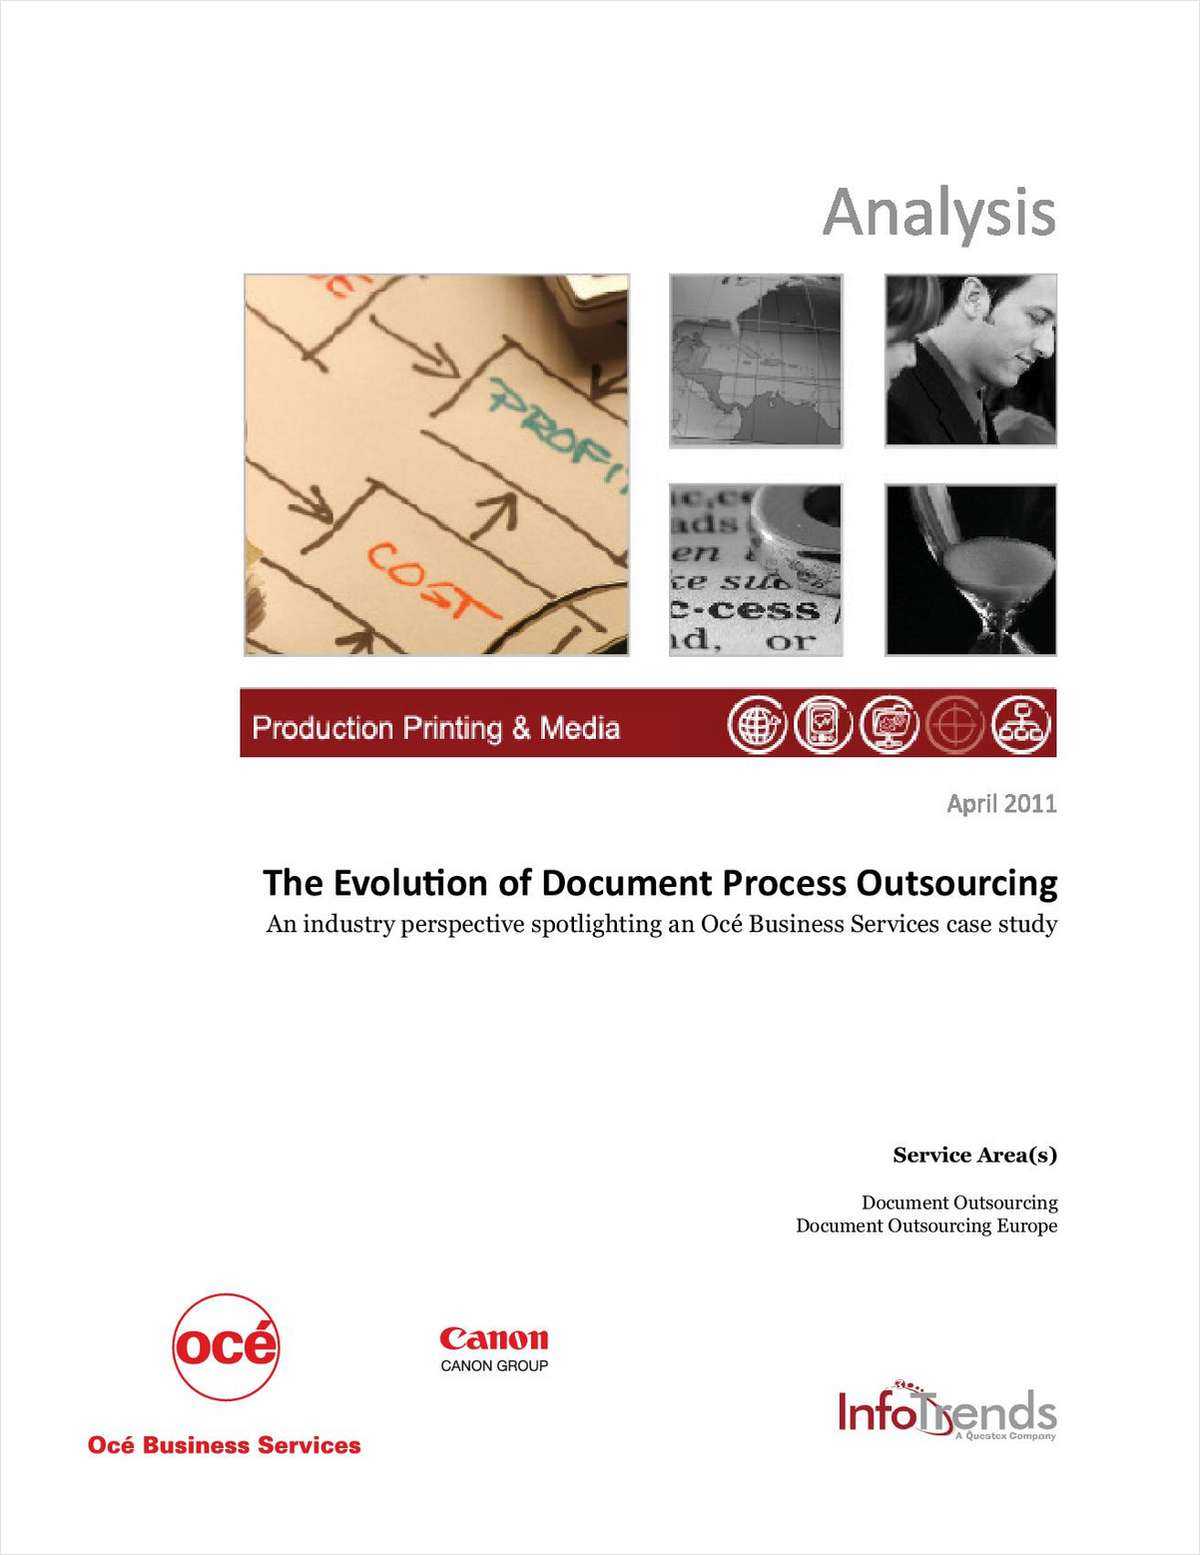 The Evolution of Document Process Outsourcing